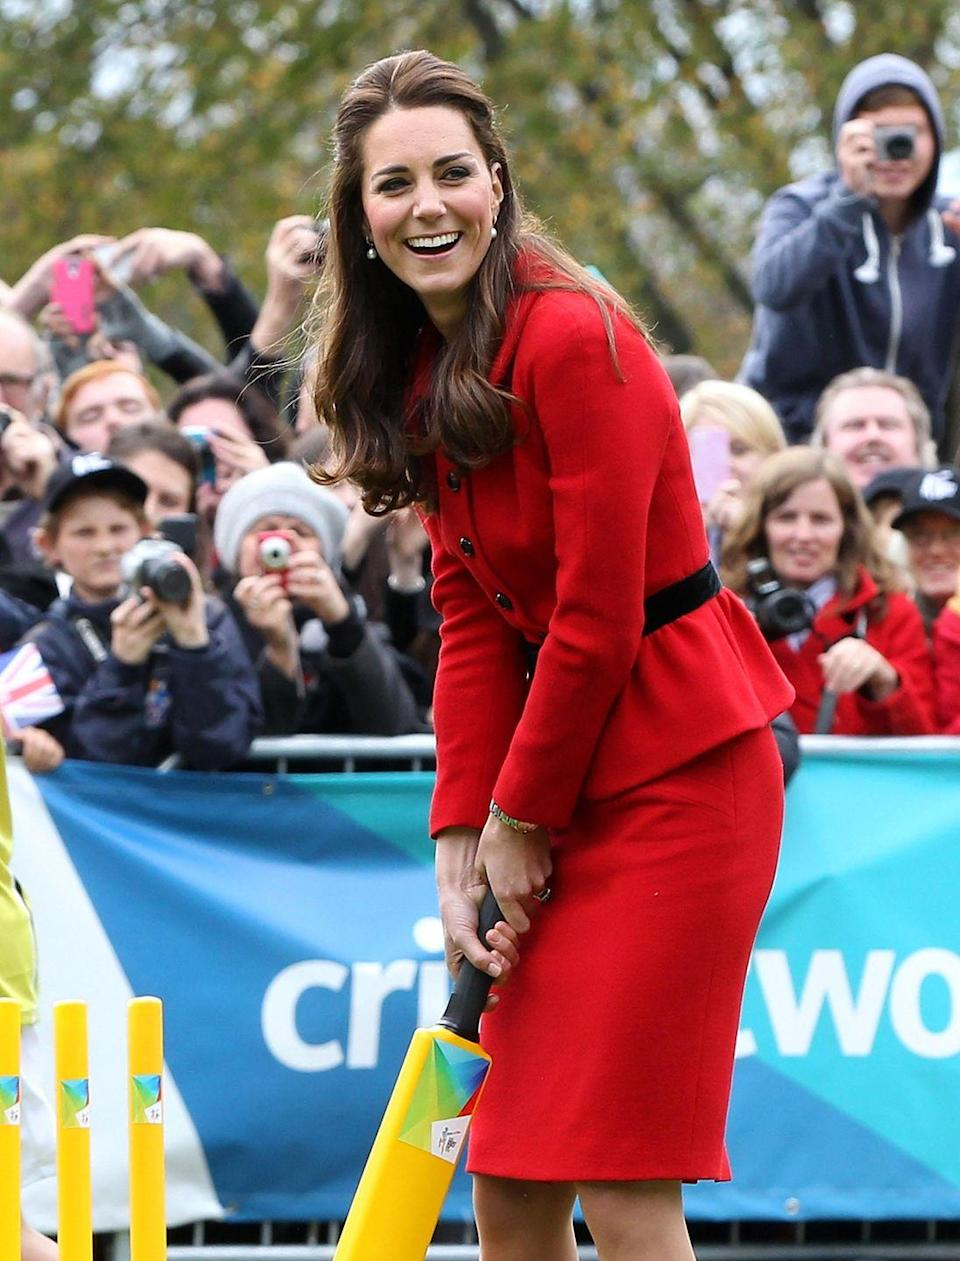 <p>Kate wore the Luisa Spagnoli again in 2014 during a visit to Christchurch, New Zealand as part of a three-week tour of Australia and New Zealand. She also played cricket in the outfit. Because princesses should be able to play cricket in anything, duh! </p>